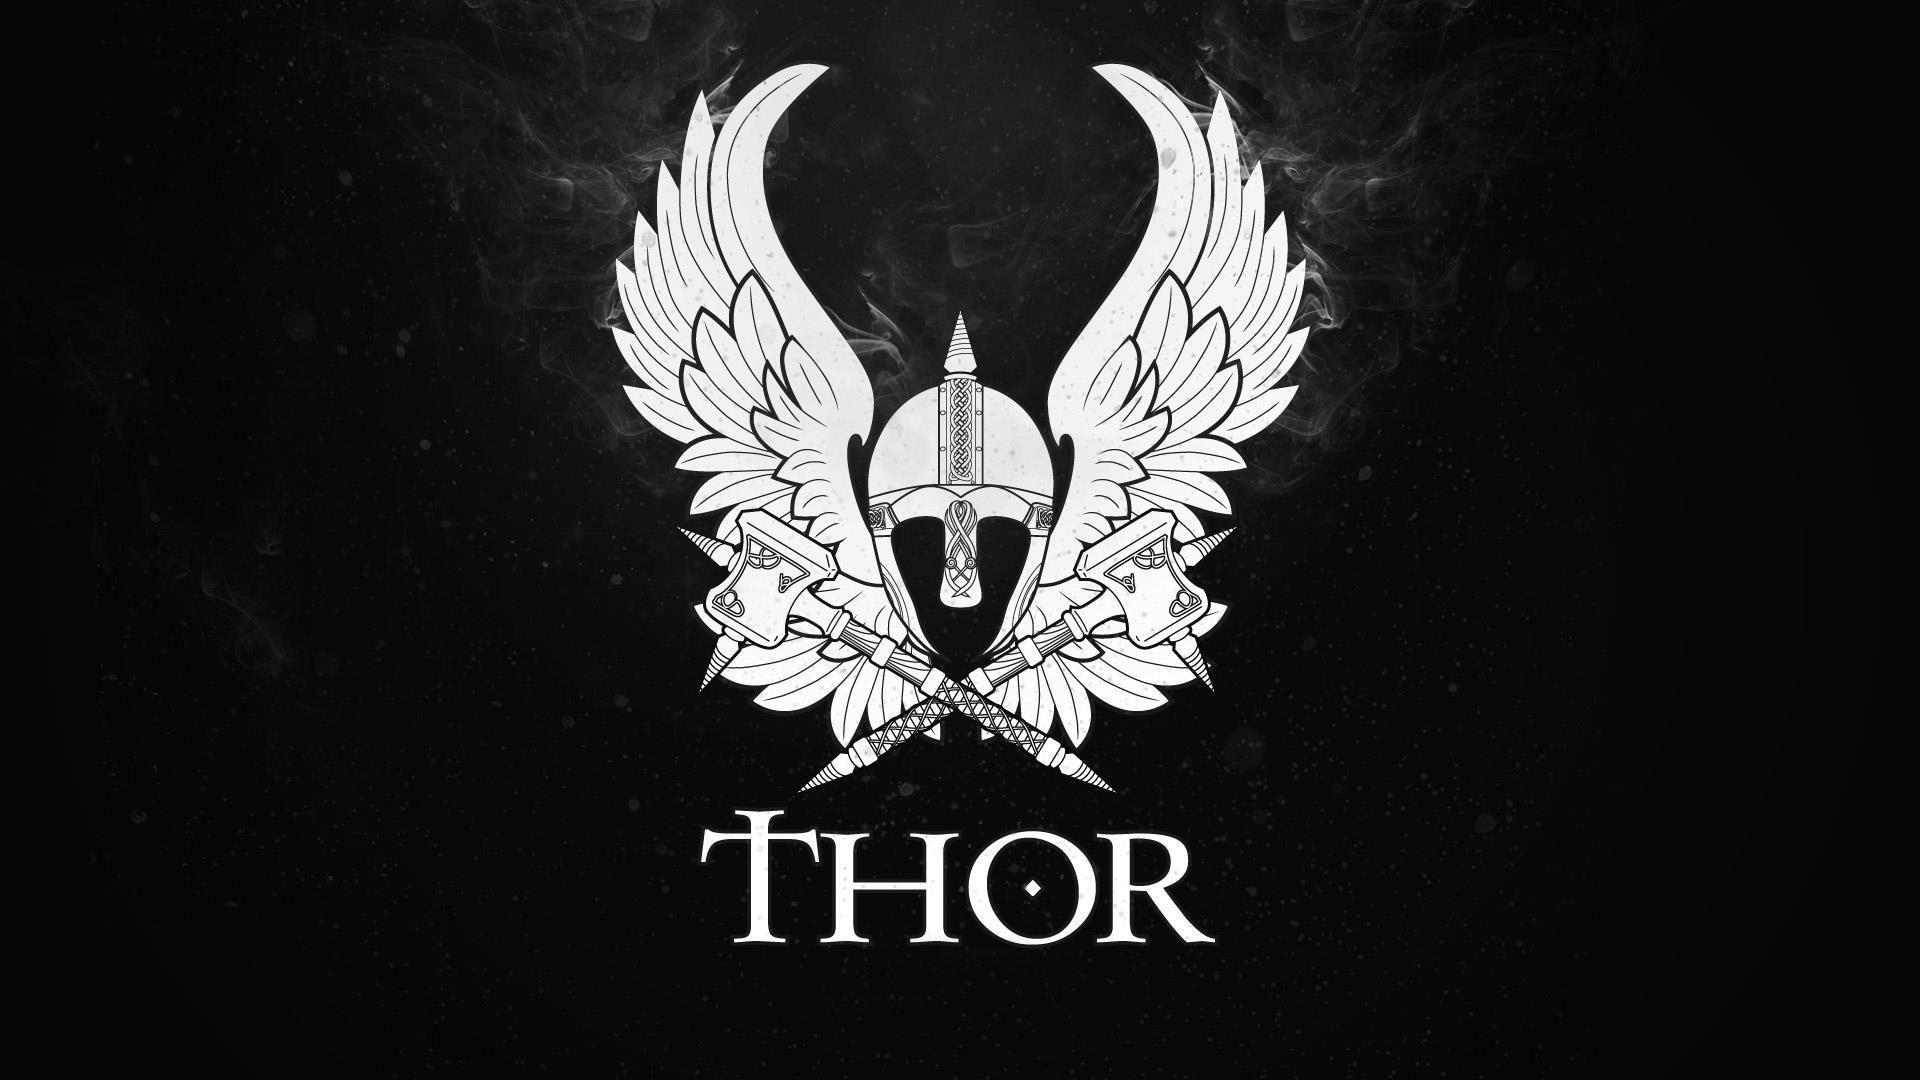 Wings thor hammer helmets black backgrounds symbols wallpapers